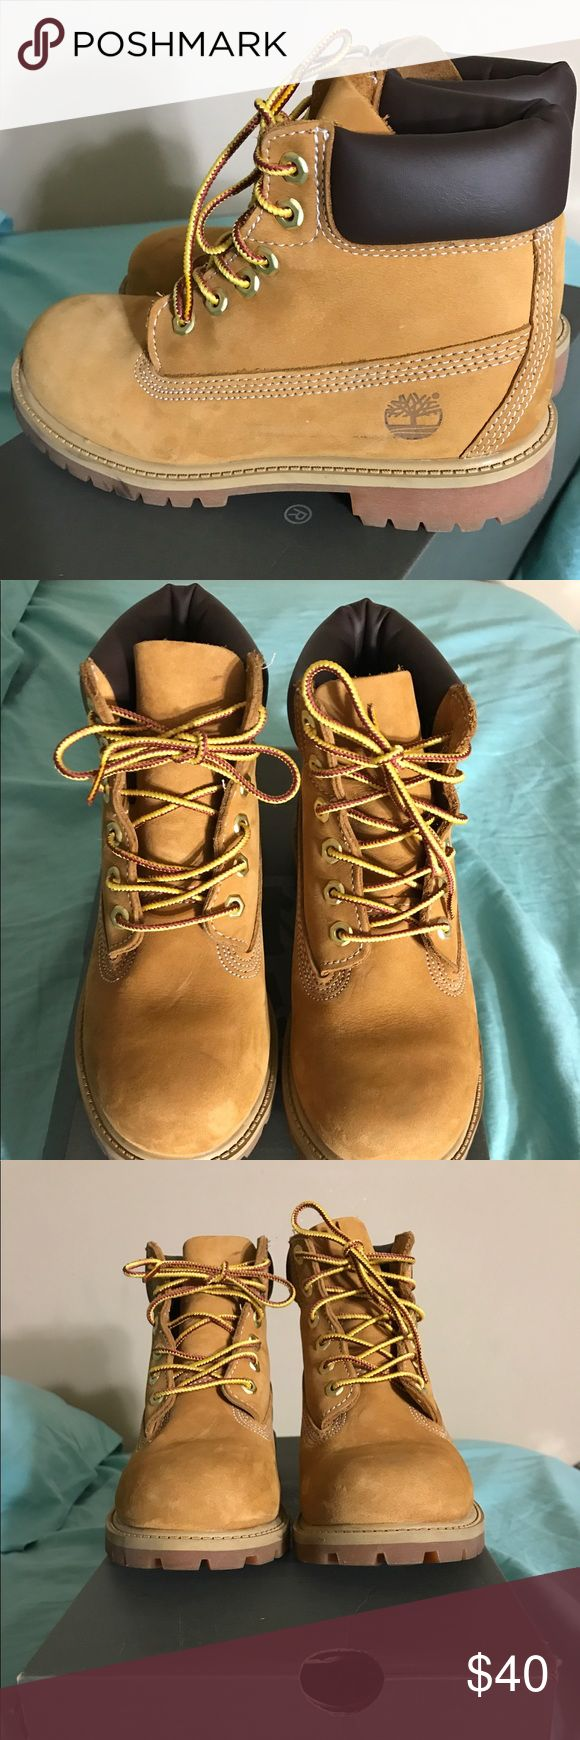 Wheat timberland boots #youth Wheat timberlands worn only 2 times Timberland Shoes Boots